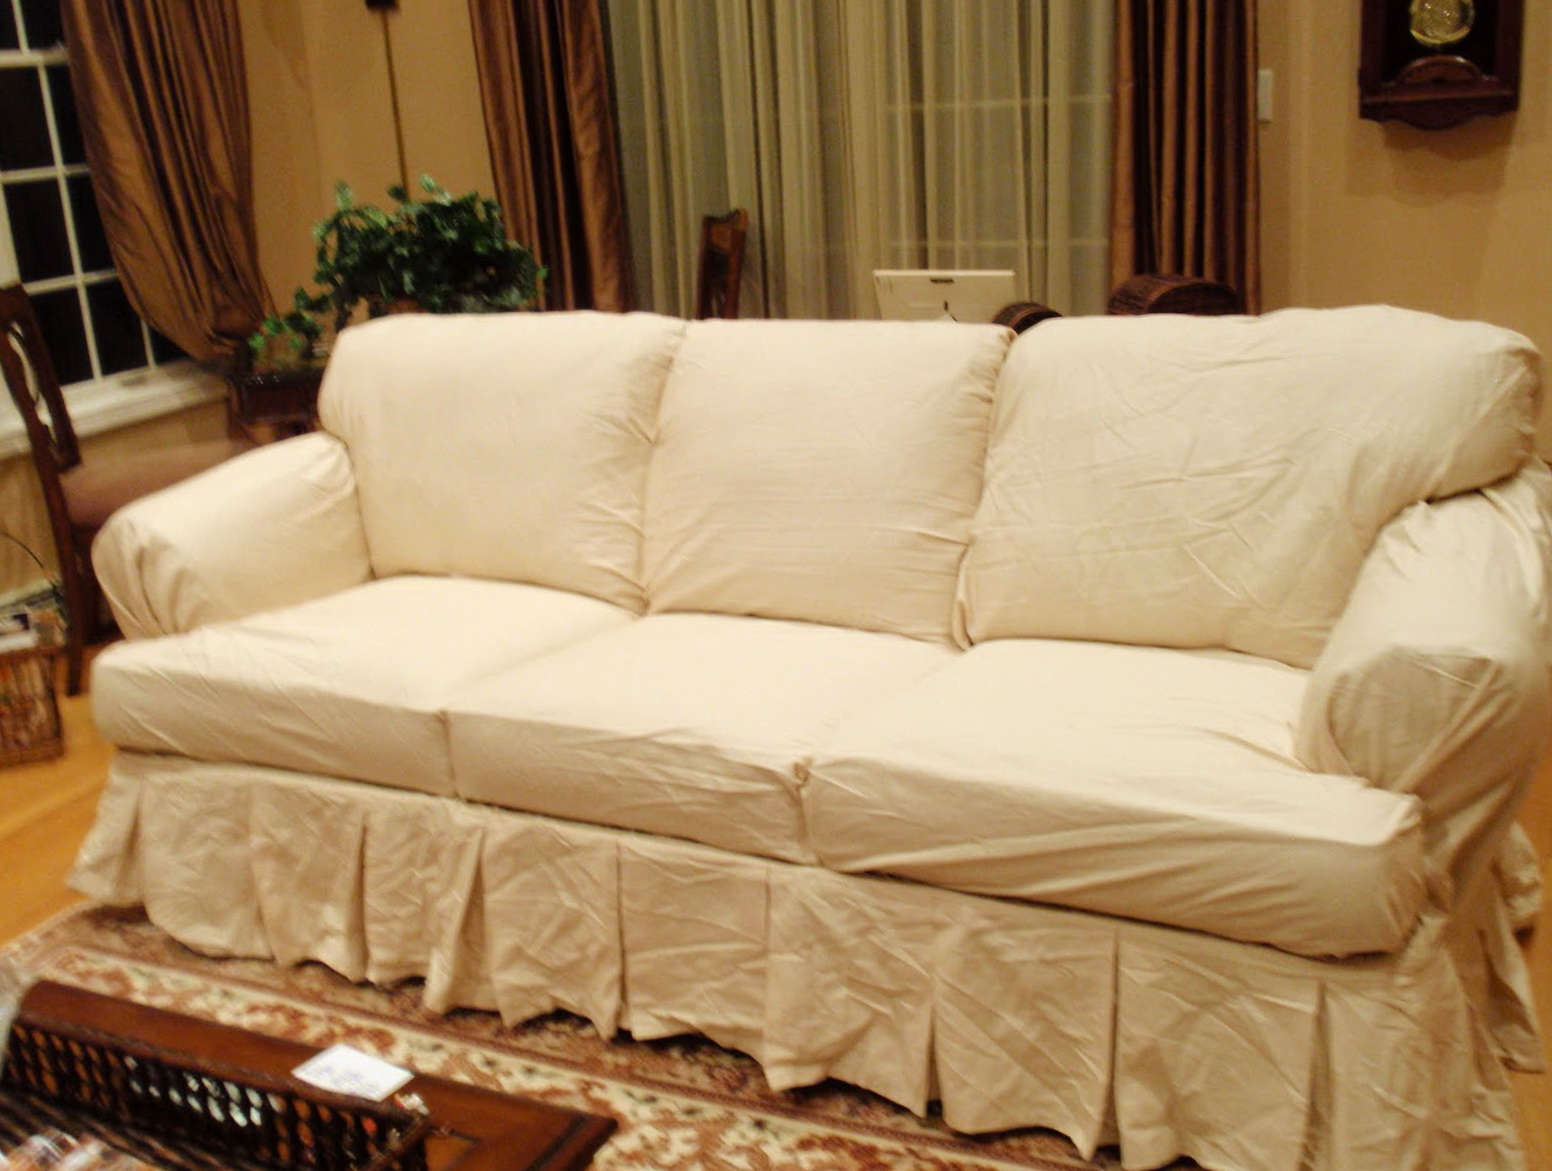 T Cushion Sofa Slipcovers Pottery Barn Slipcovers In Brand